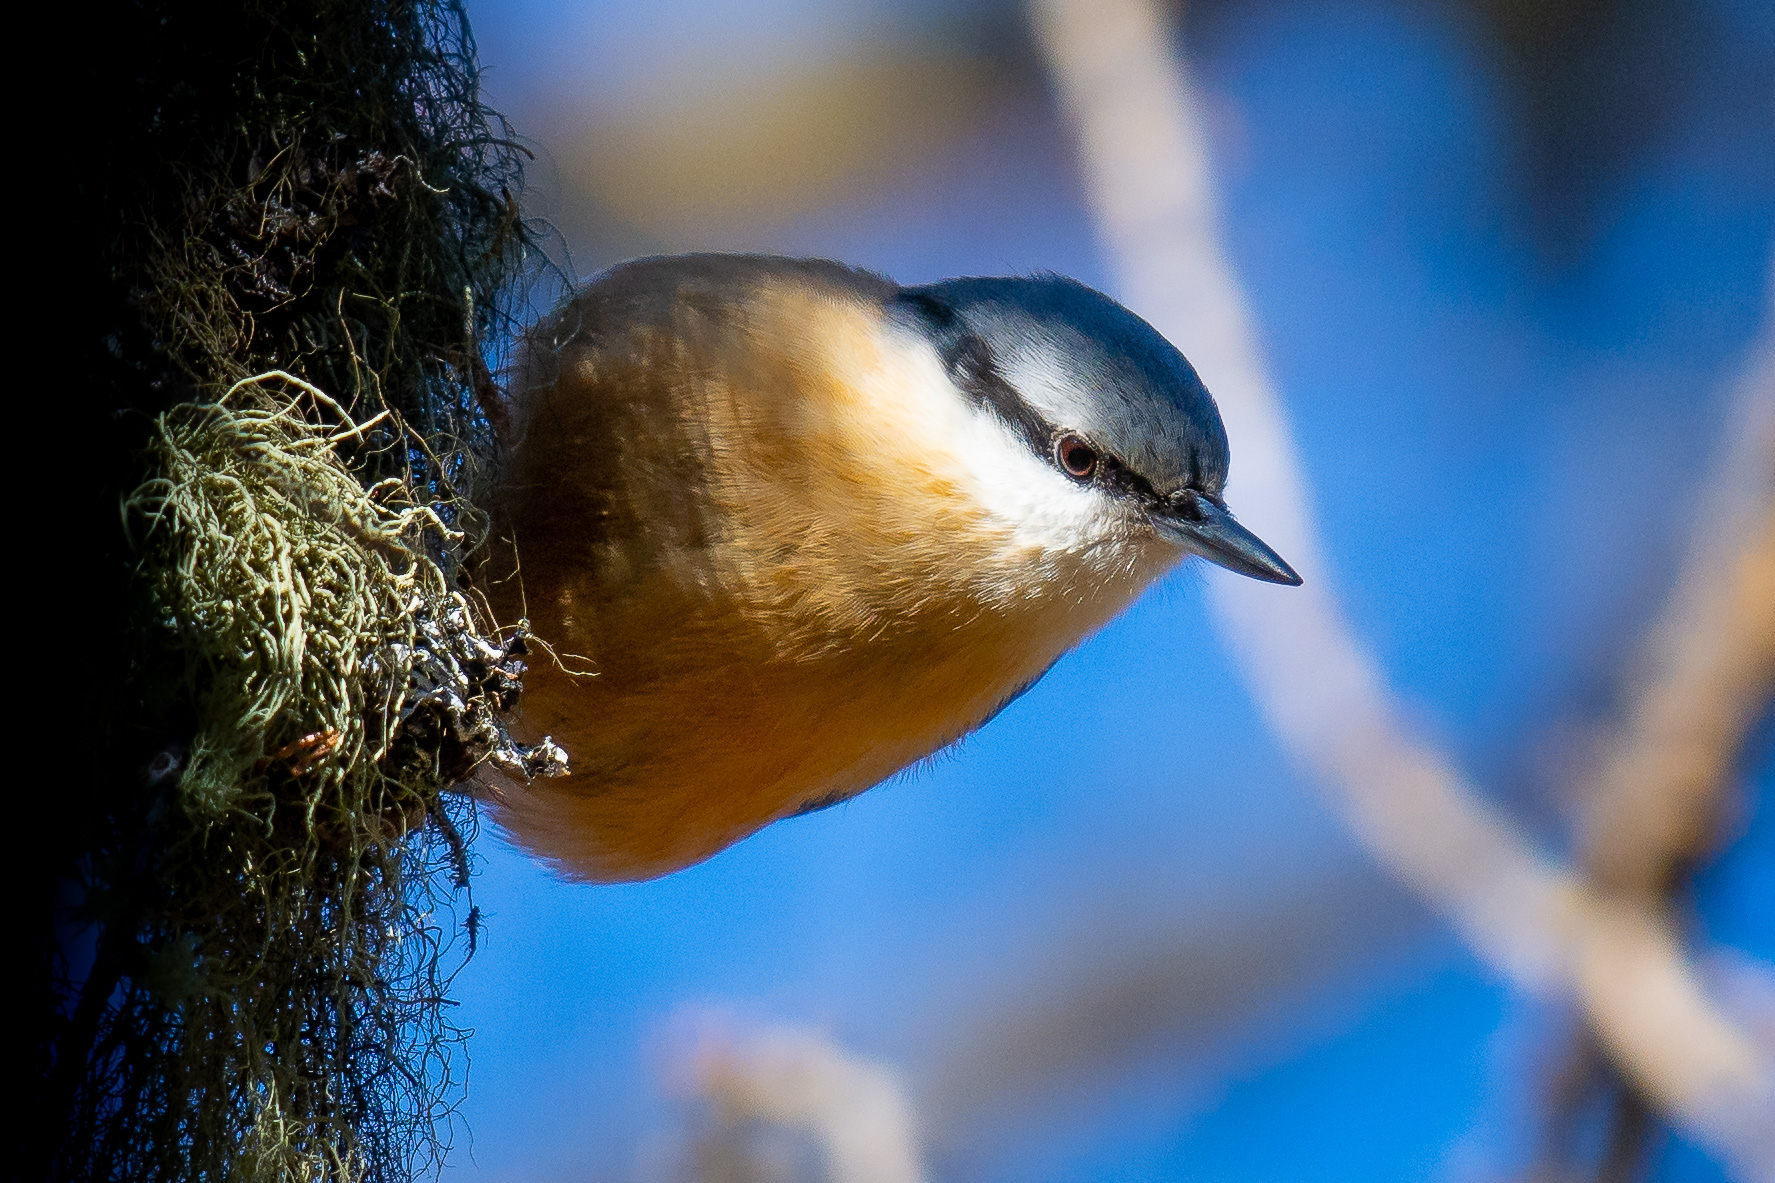 Nuthatch in his environment...